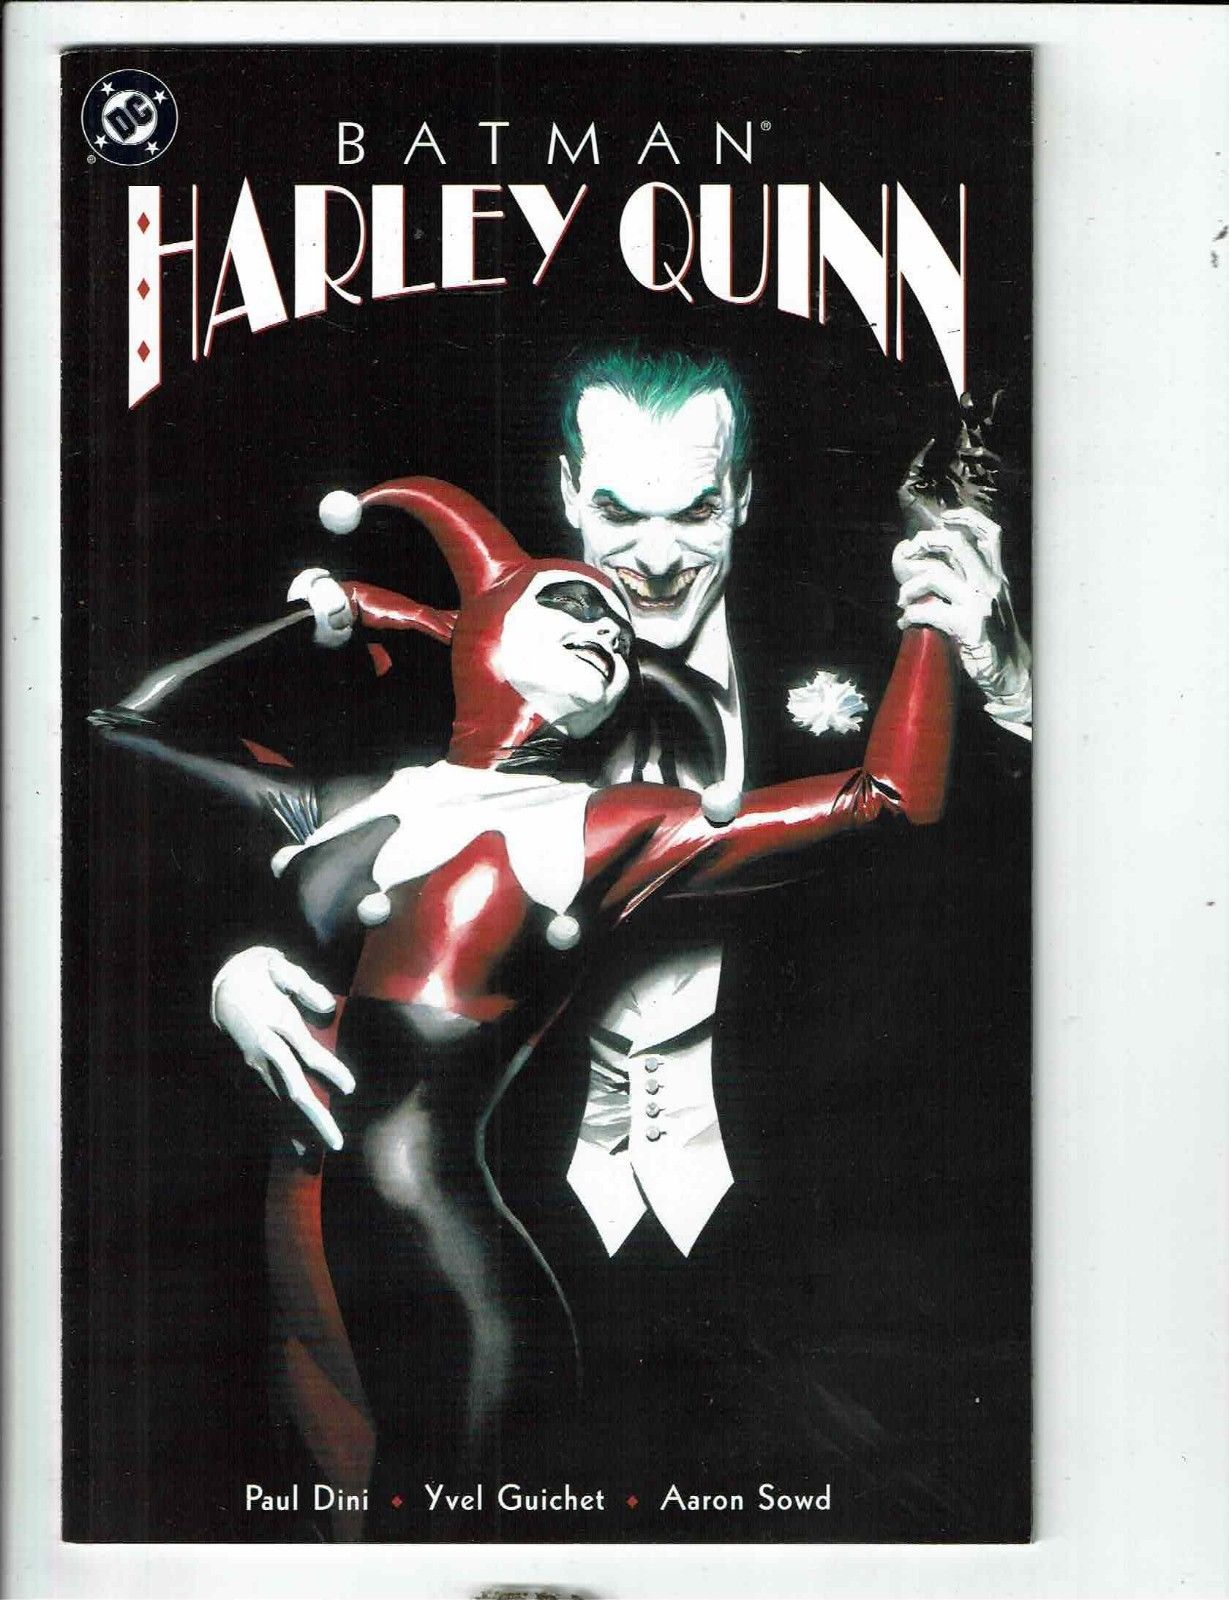 DC Comics HARLEY QUINN #33 cover B first printing